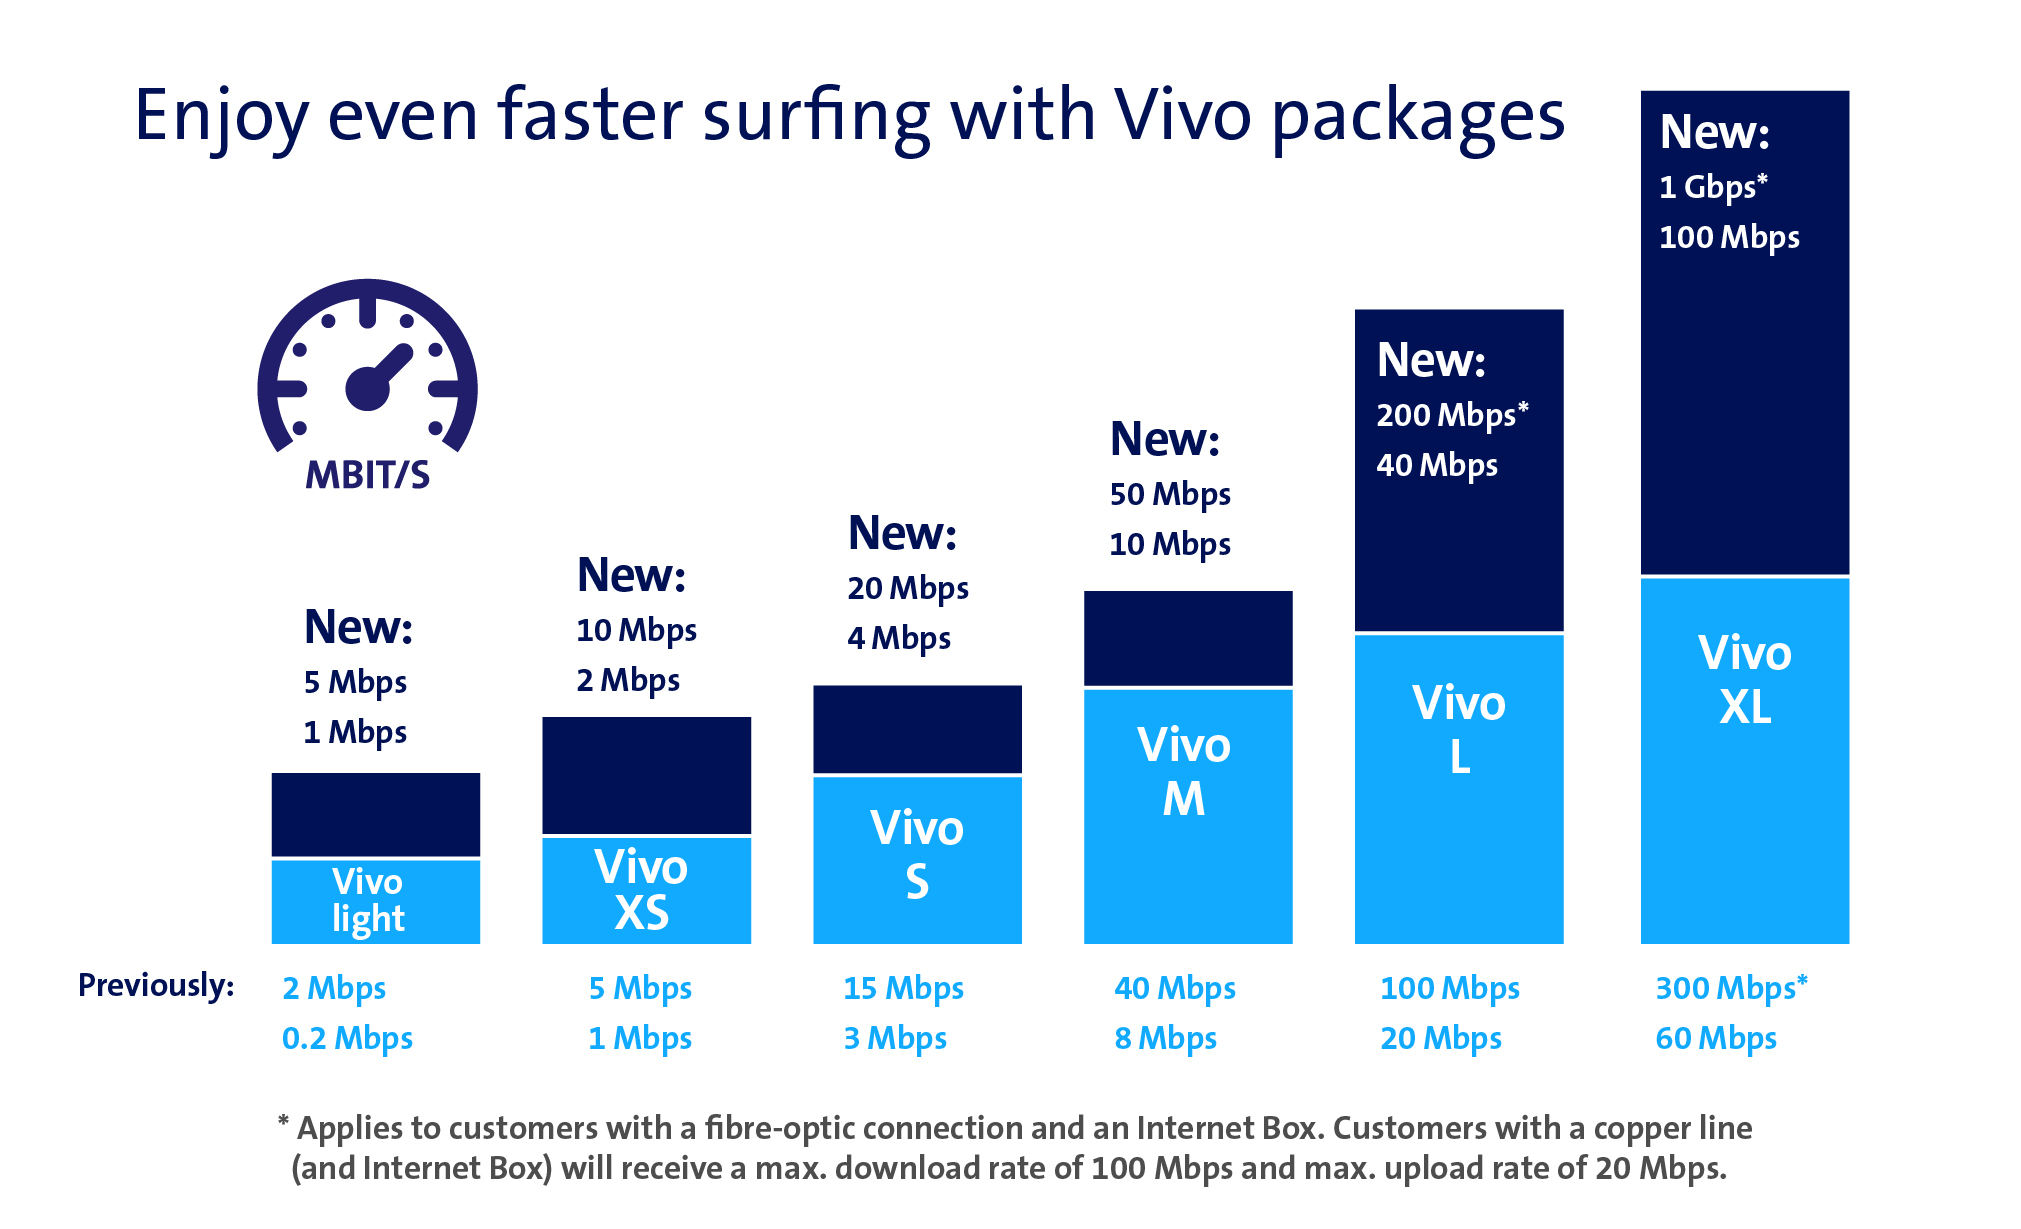 New Features Of The Vivo Packages Surf The Web Even